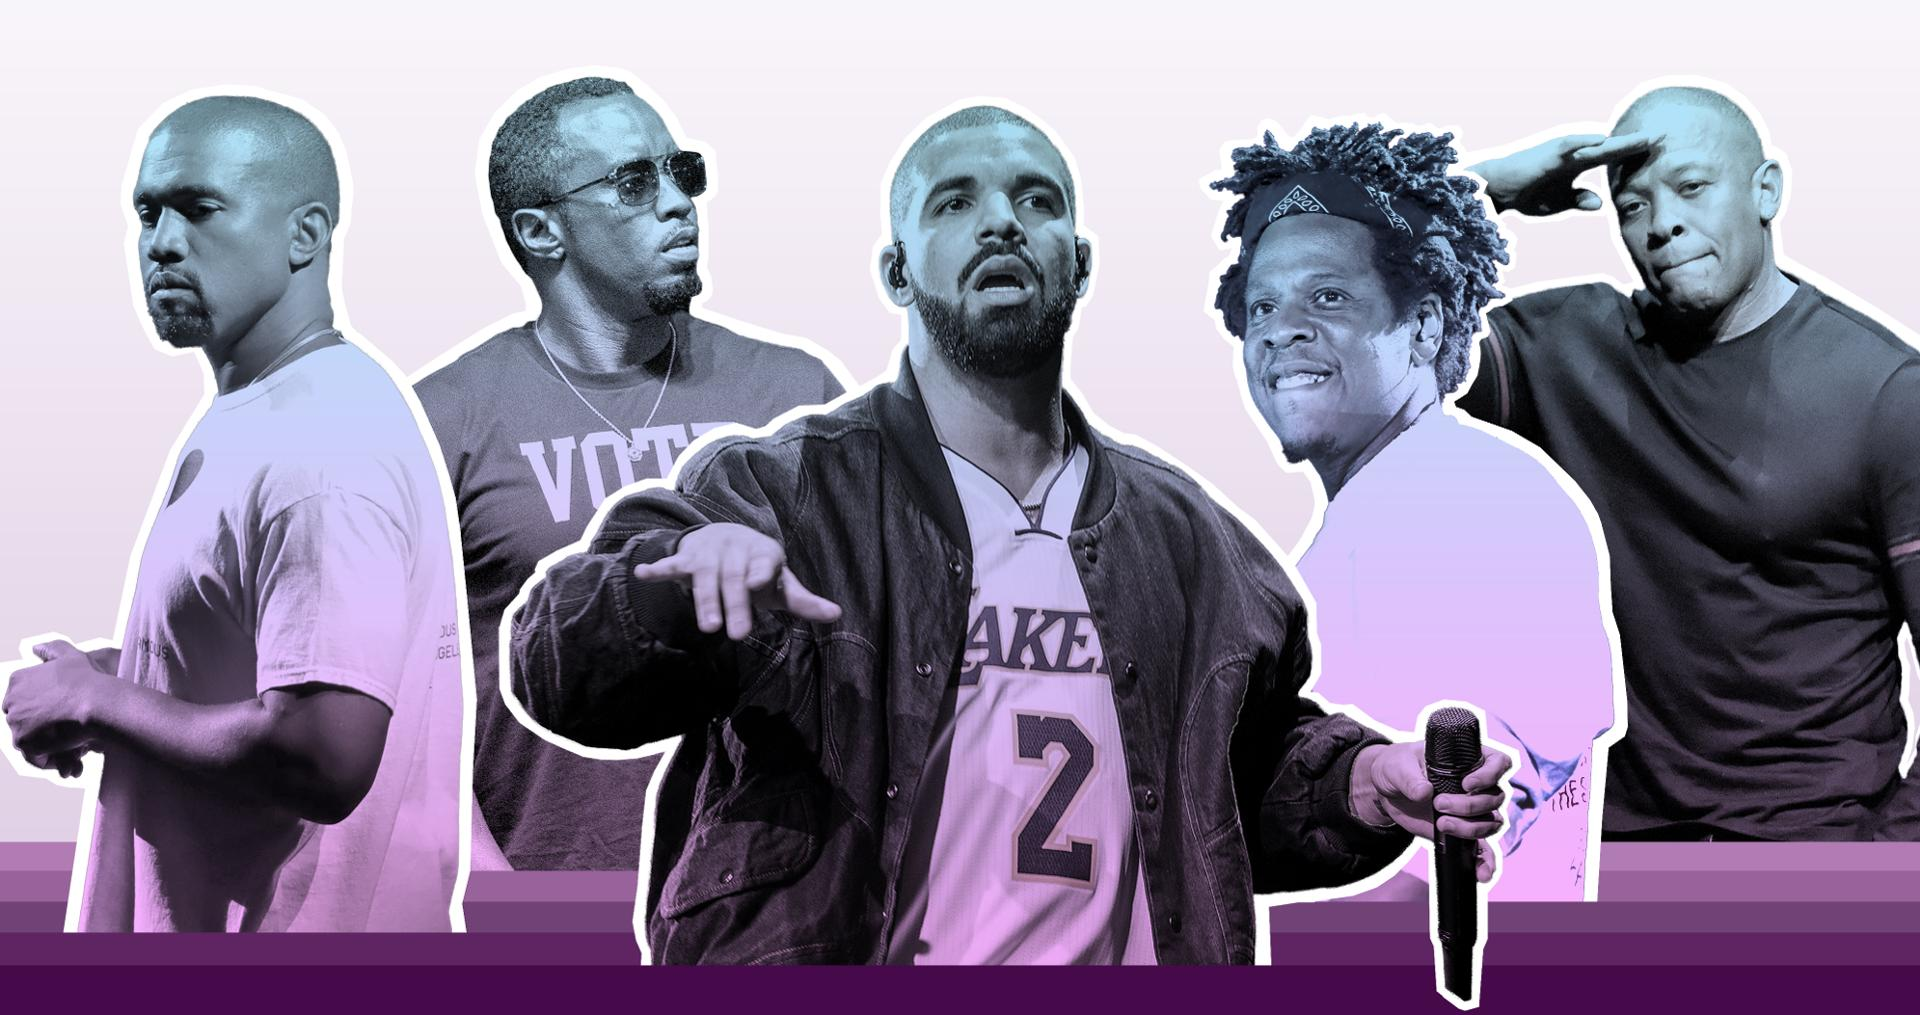 <h1>From Jay-Z to Drake: Richest Rappers</h1><h2>The Forbes rating is headed by the first billionaire in hip-hop culture — Jay-Z</h2>